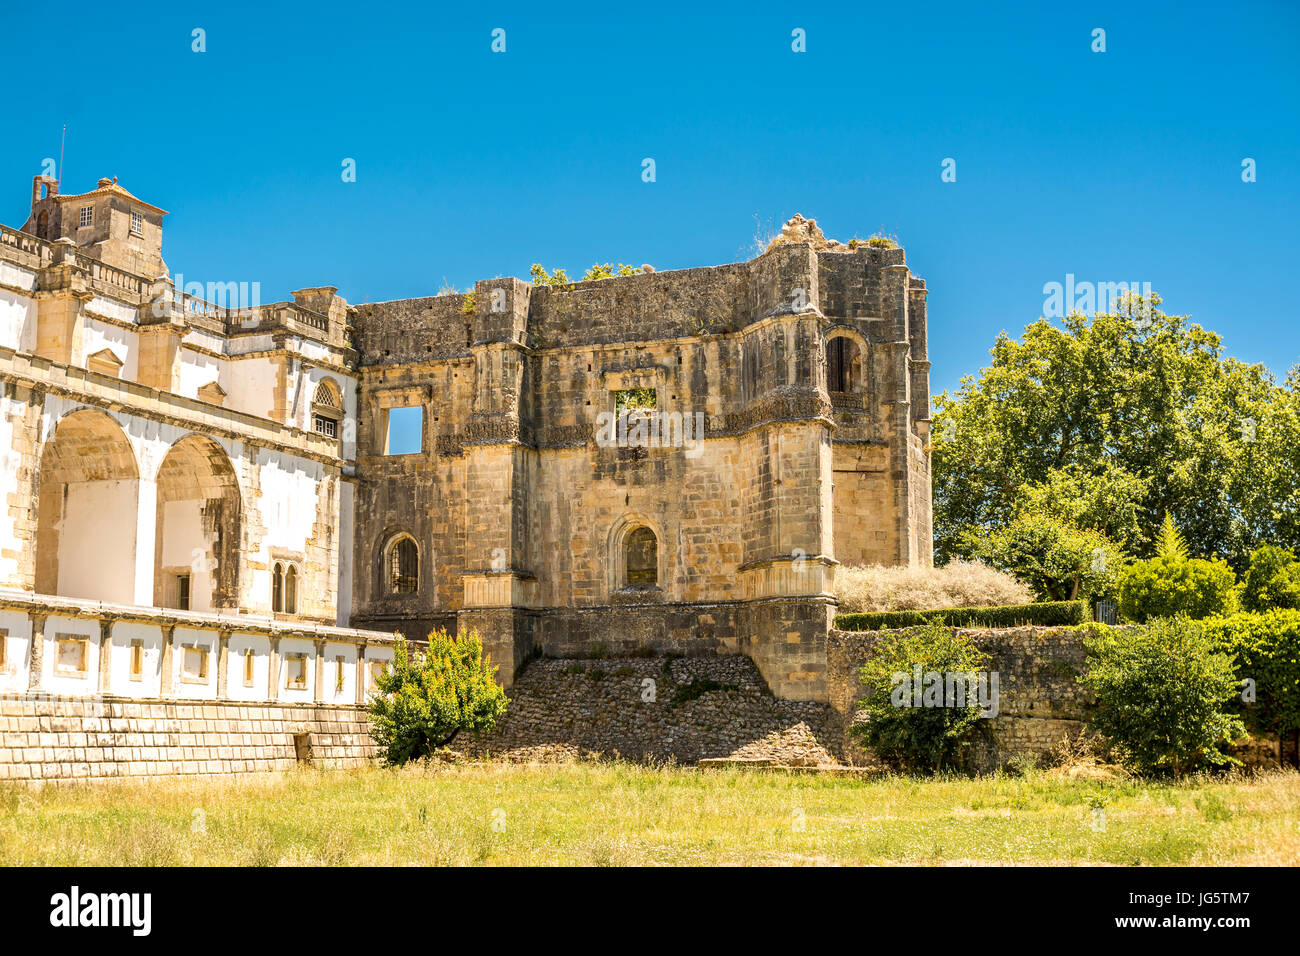 Ancient 600 year old castle in Tomar, Portugal on a very sunny day 2017 - Stock Image